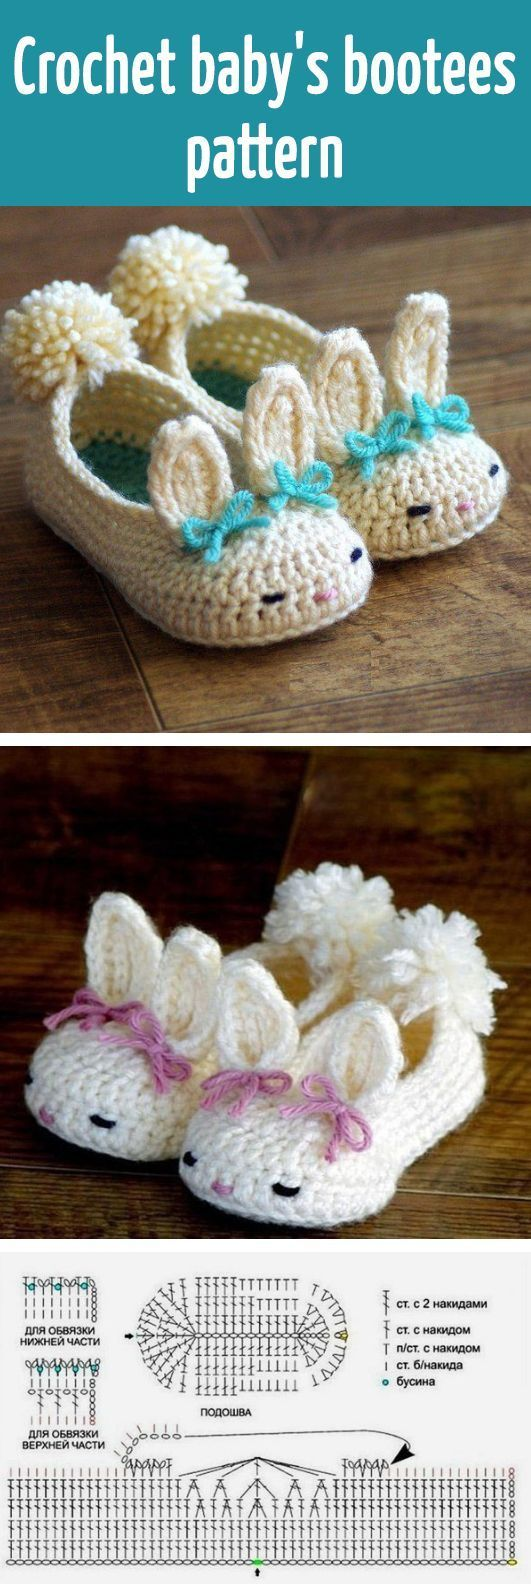 Crochet baby's bootees pattern::